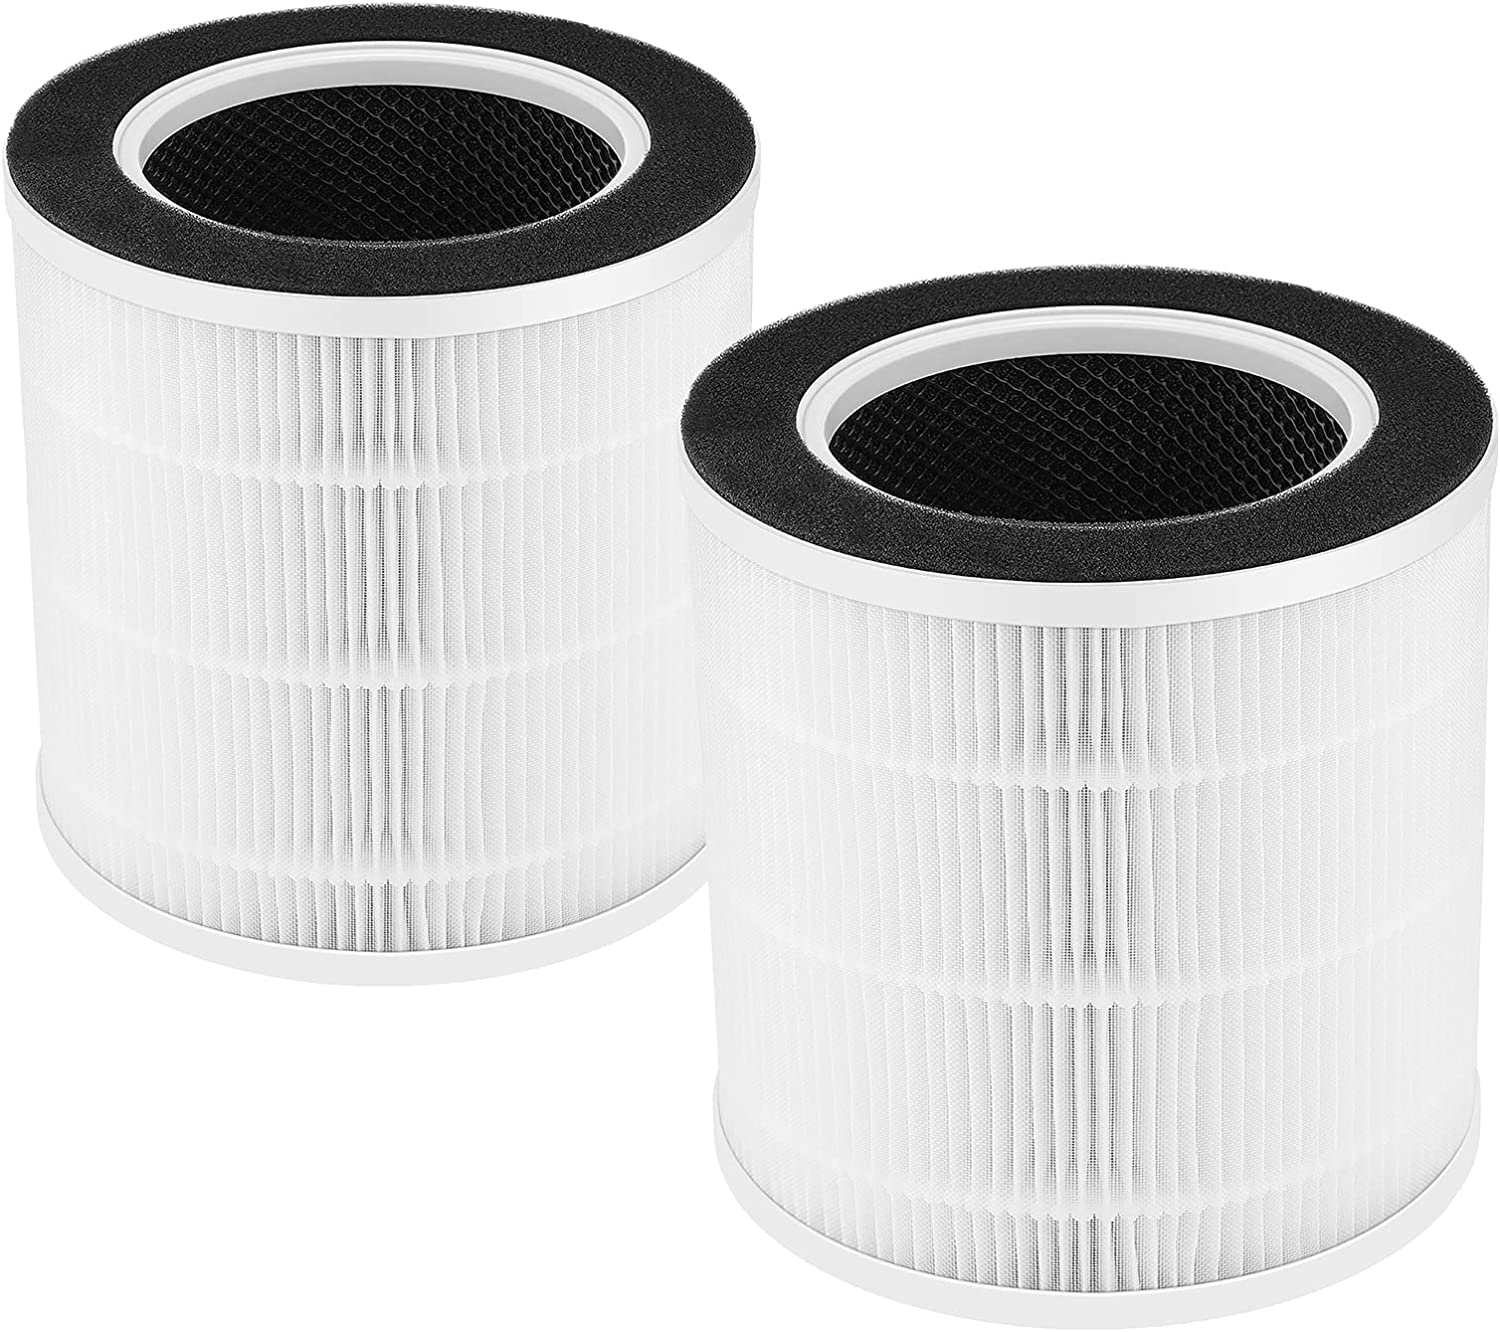 isinlive Sale SALE% OFF Department store VK-6067B True HEPA Replacement Compatible for Filter HO